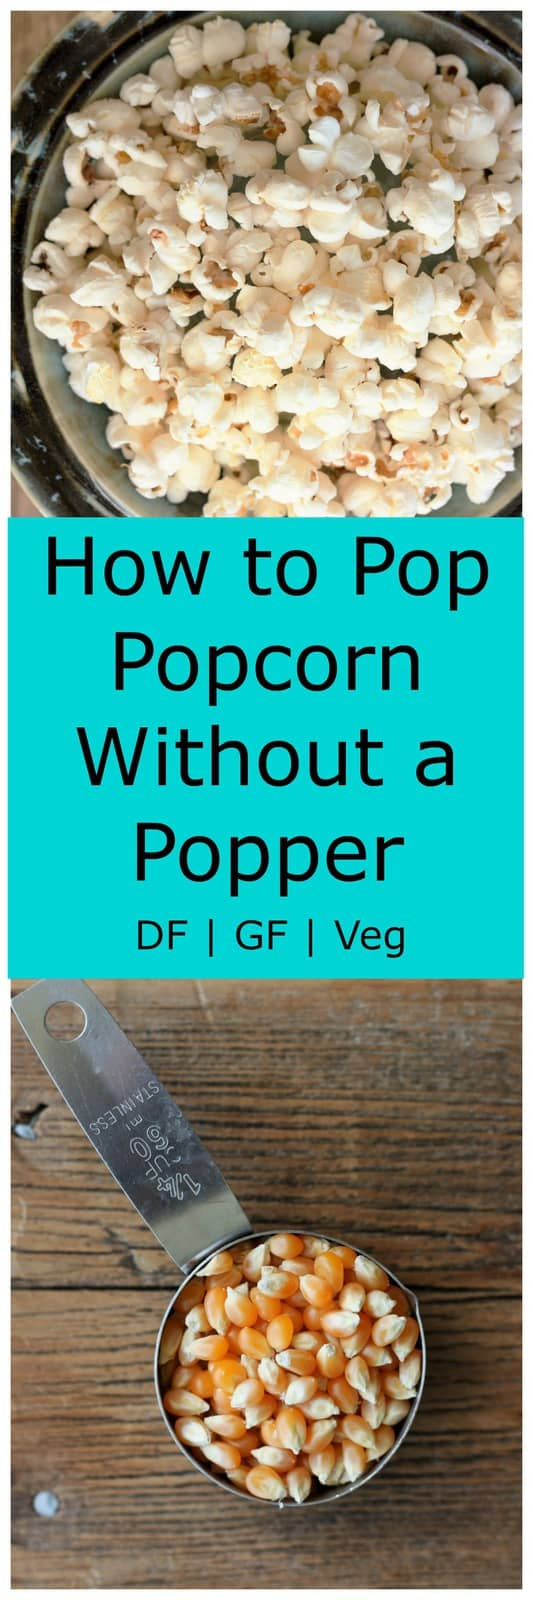 How to Pop Popcorn Without a Popper